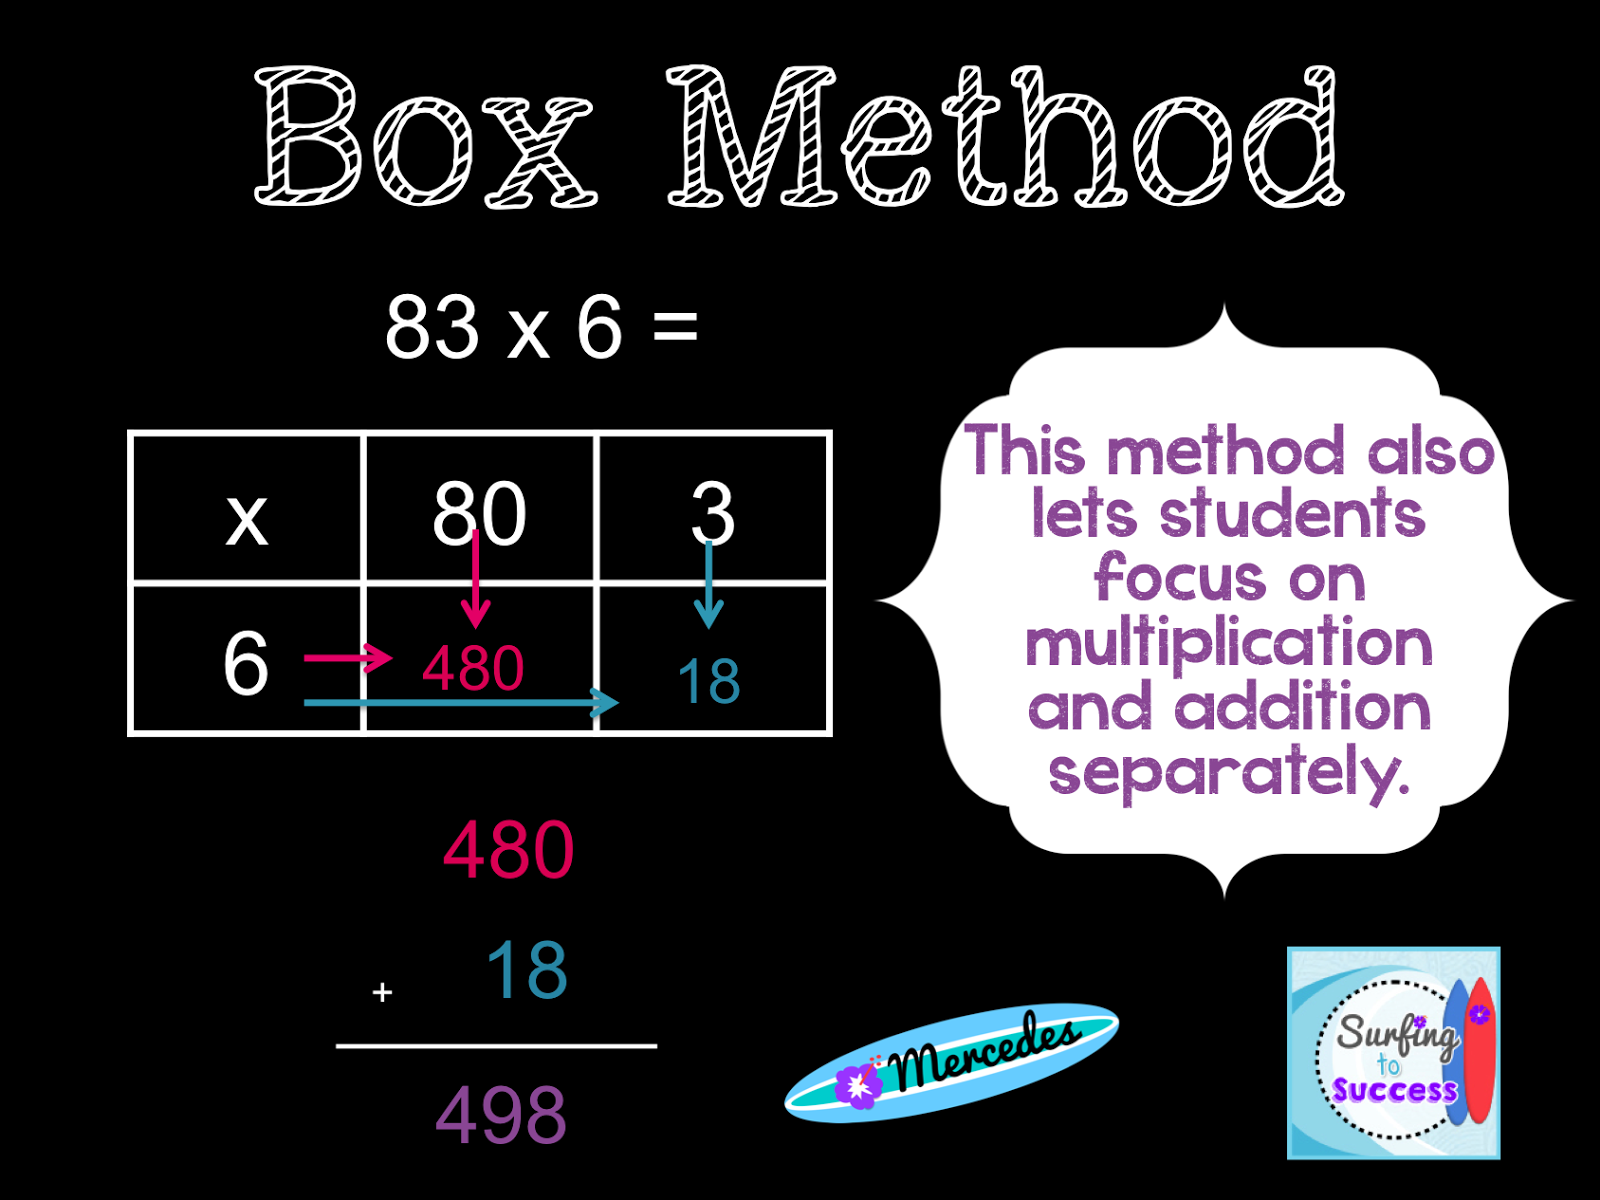 Surfing To Success 3 Strategies For Multiplying Multi Digit Numbers